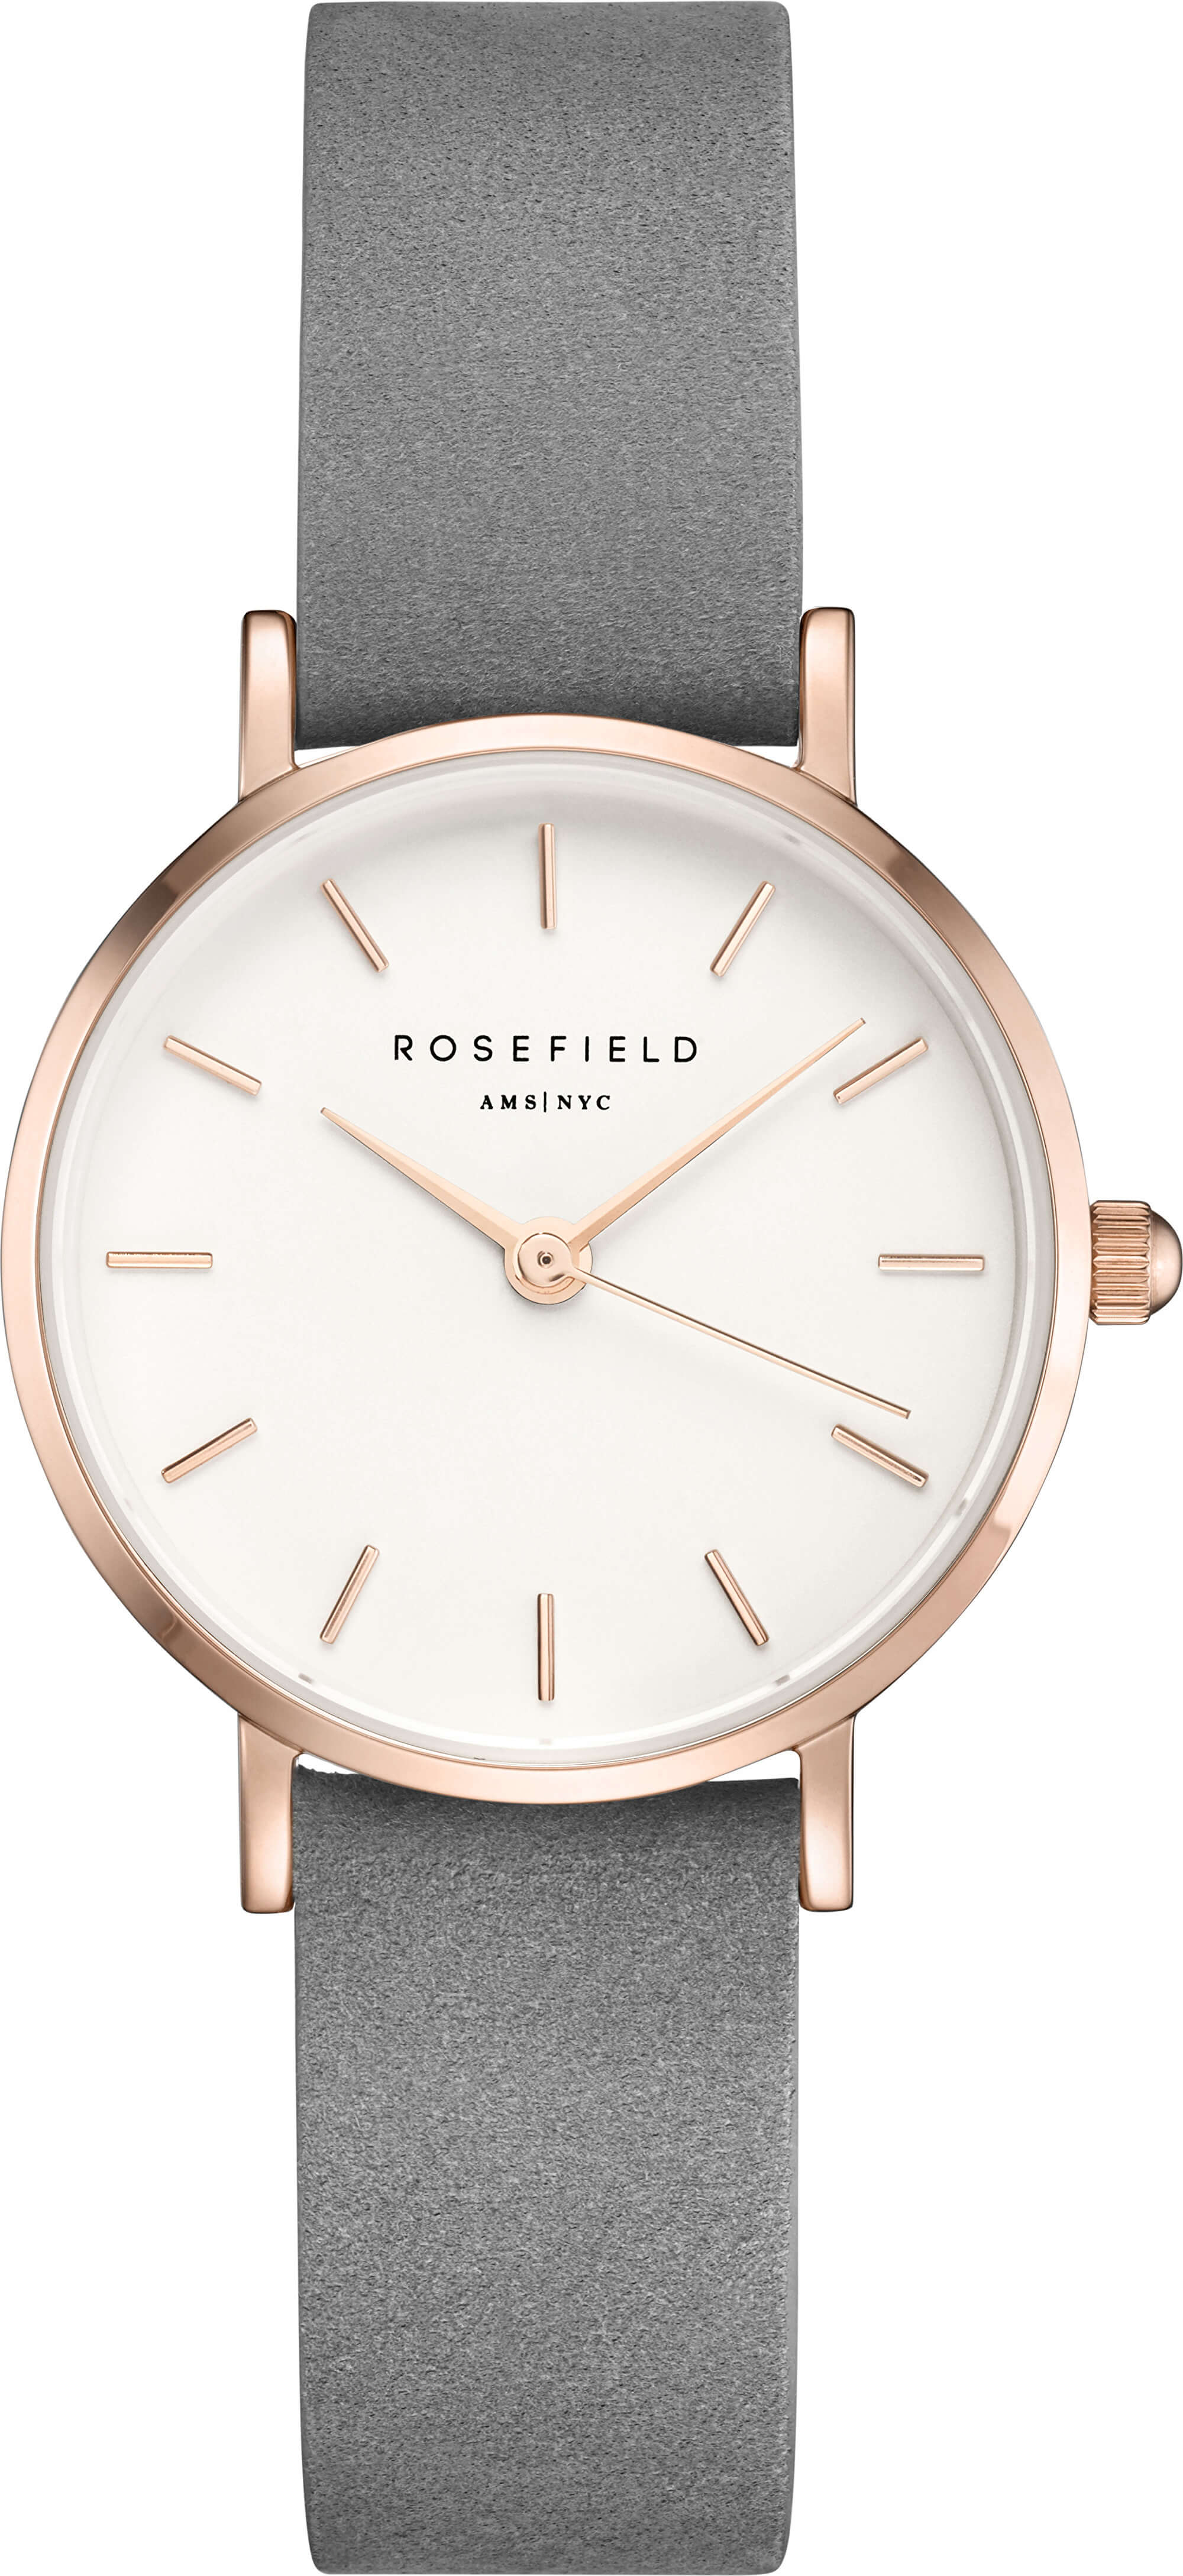 74189a1172 Rosefield The Small Edit Elephant Grey   Rose Gold Doprava ZDARMA ...